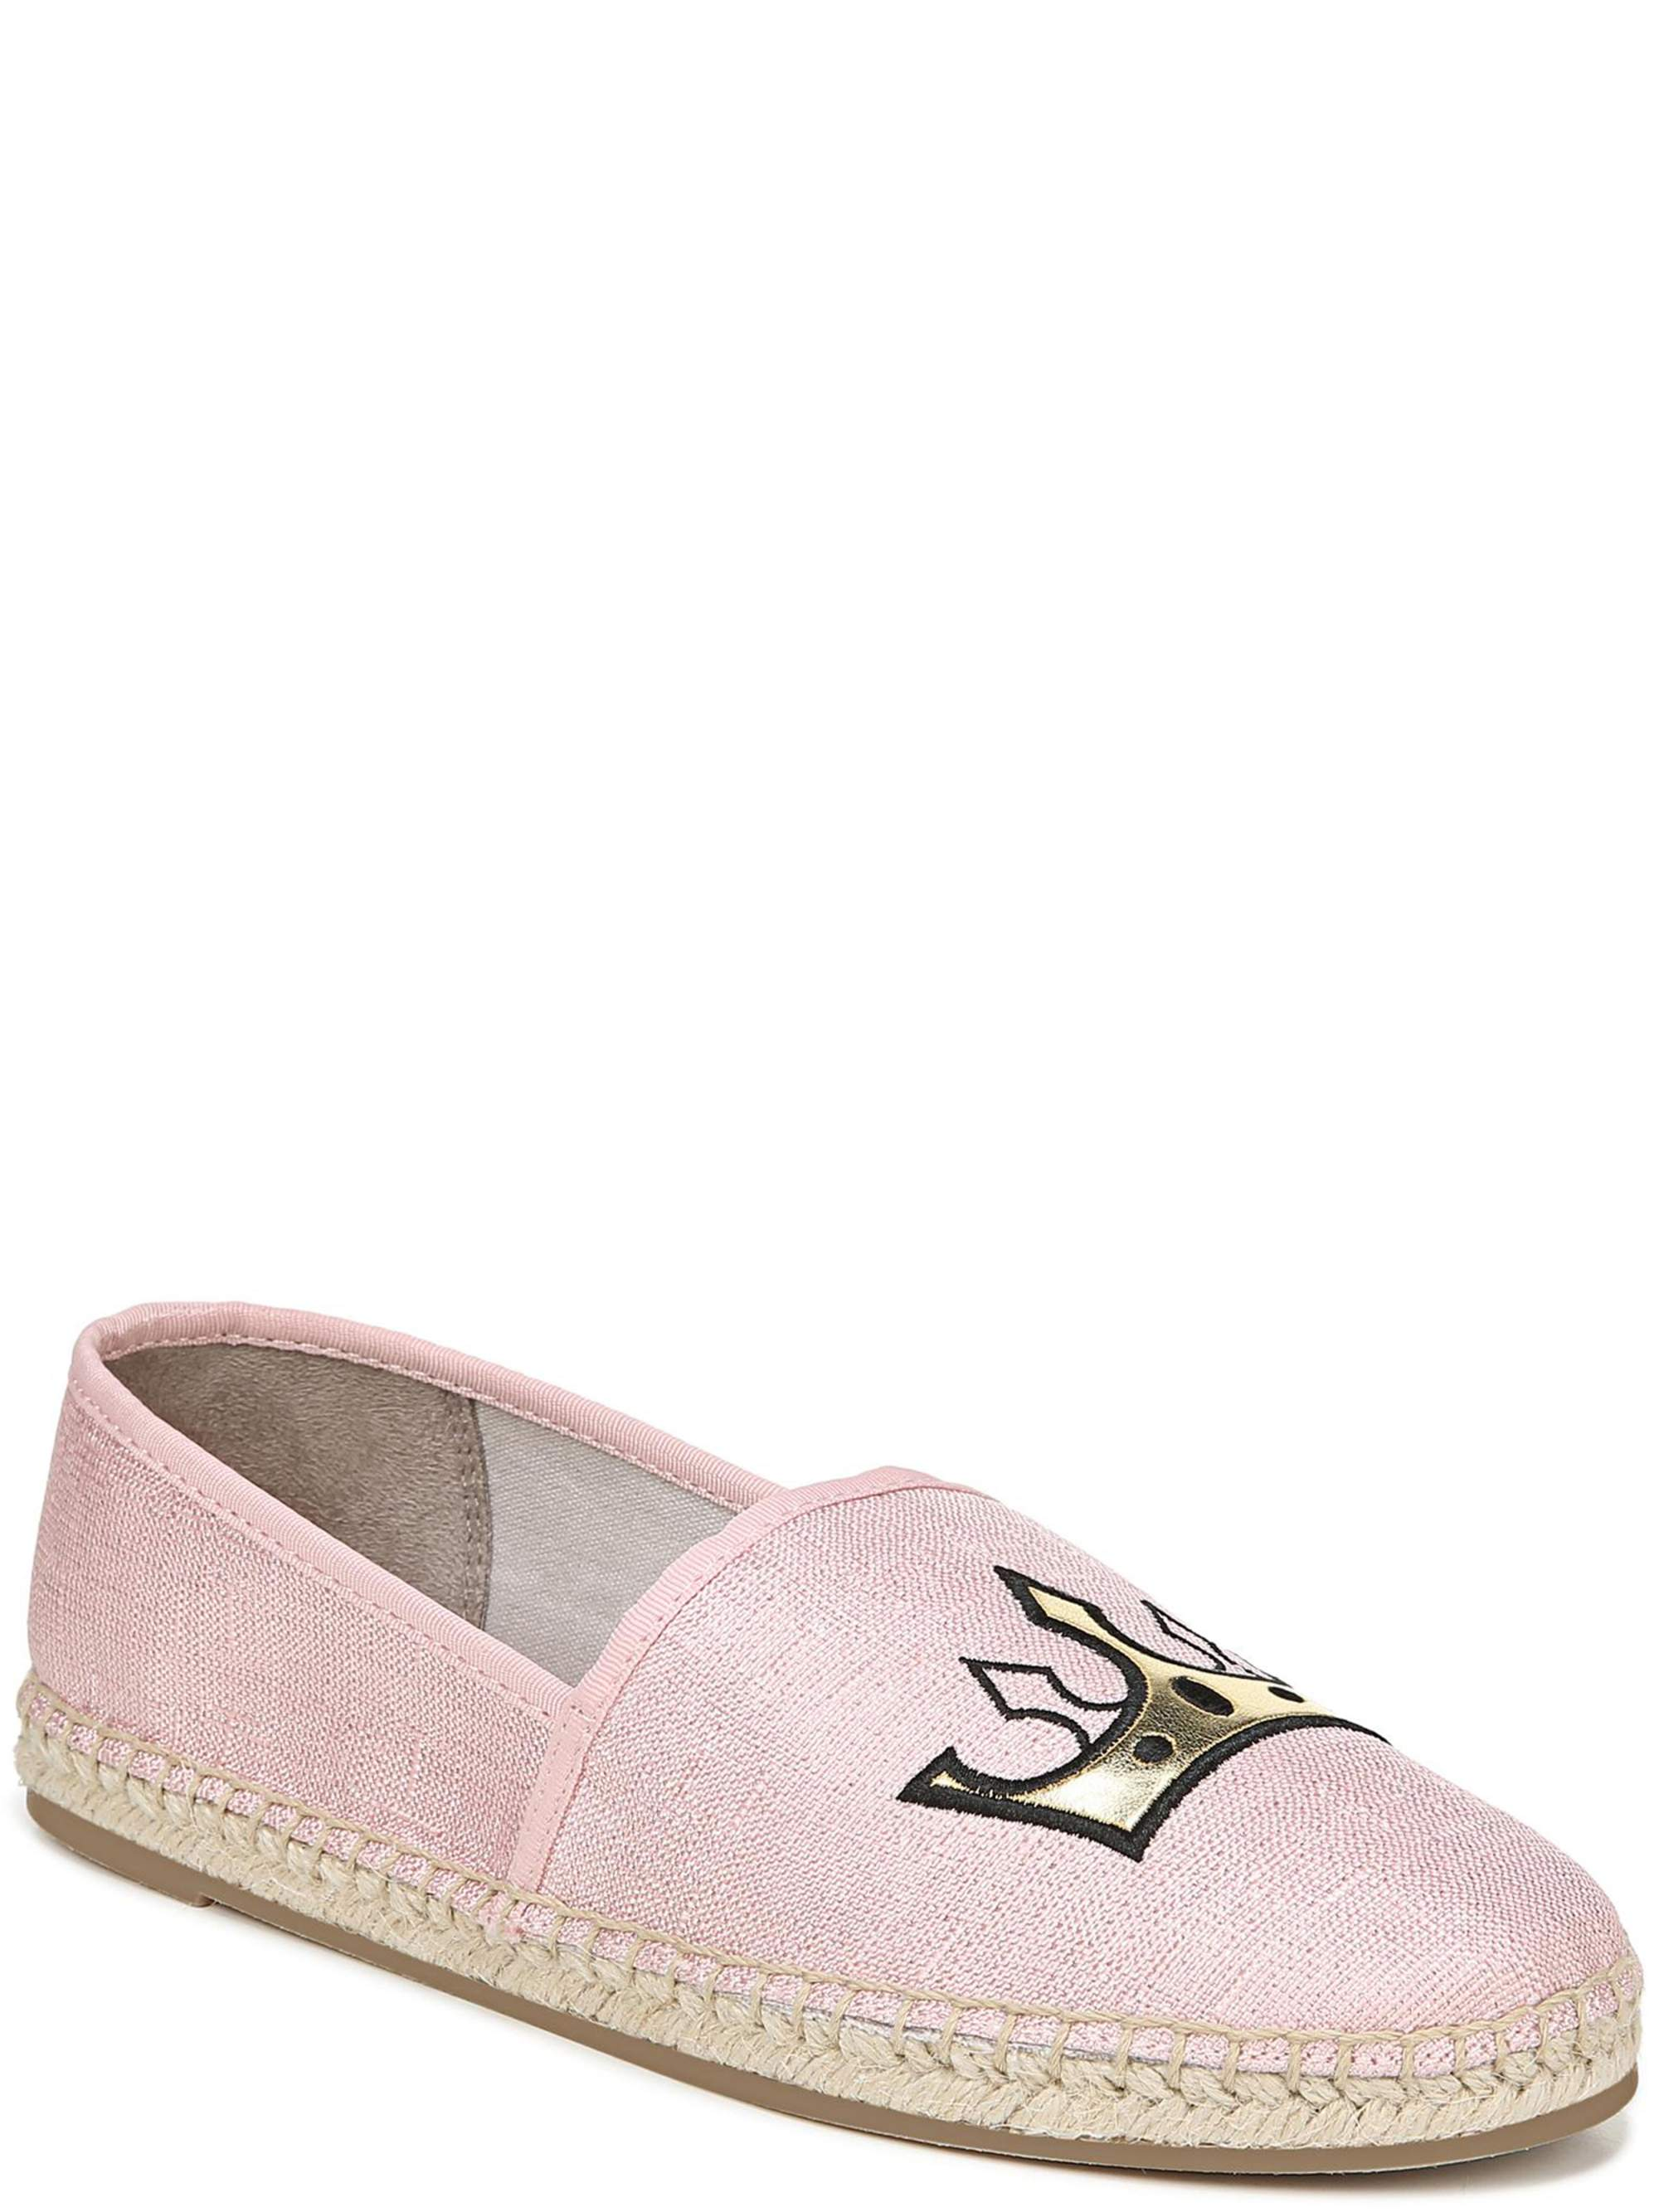 Women's Circus by Sam Edelman Leni-6 Slip-On Espadrilles